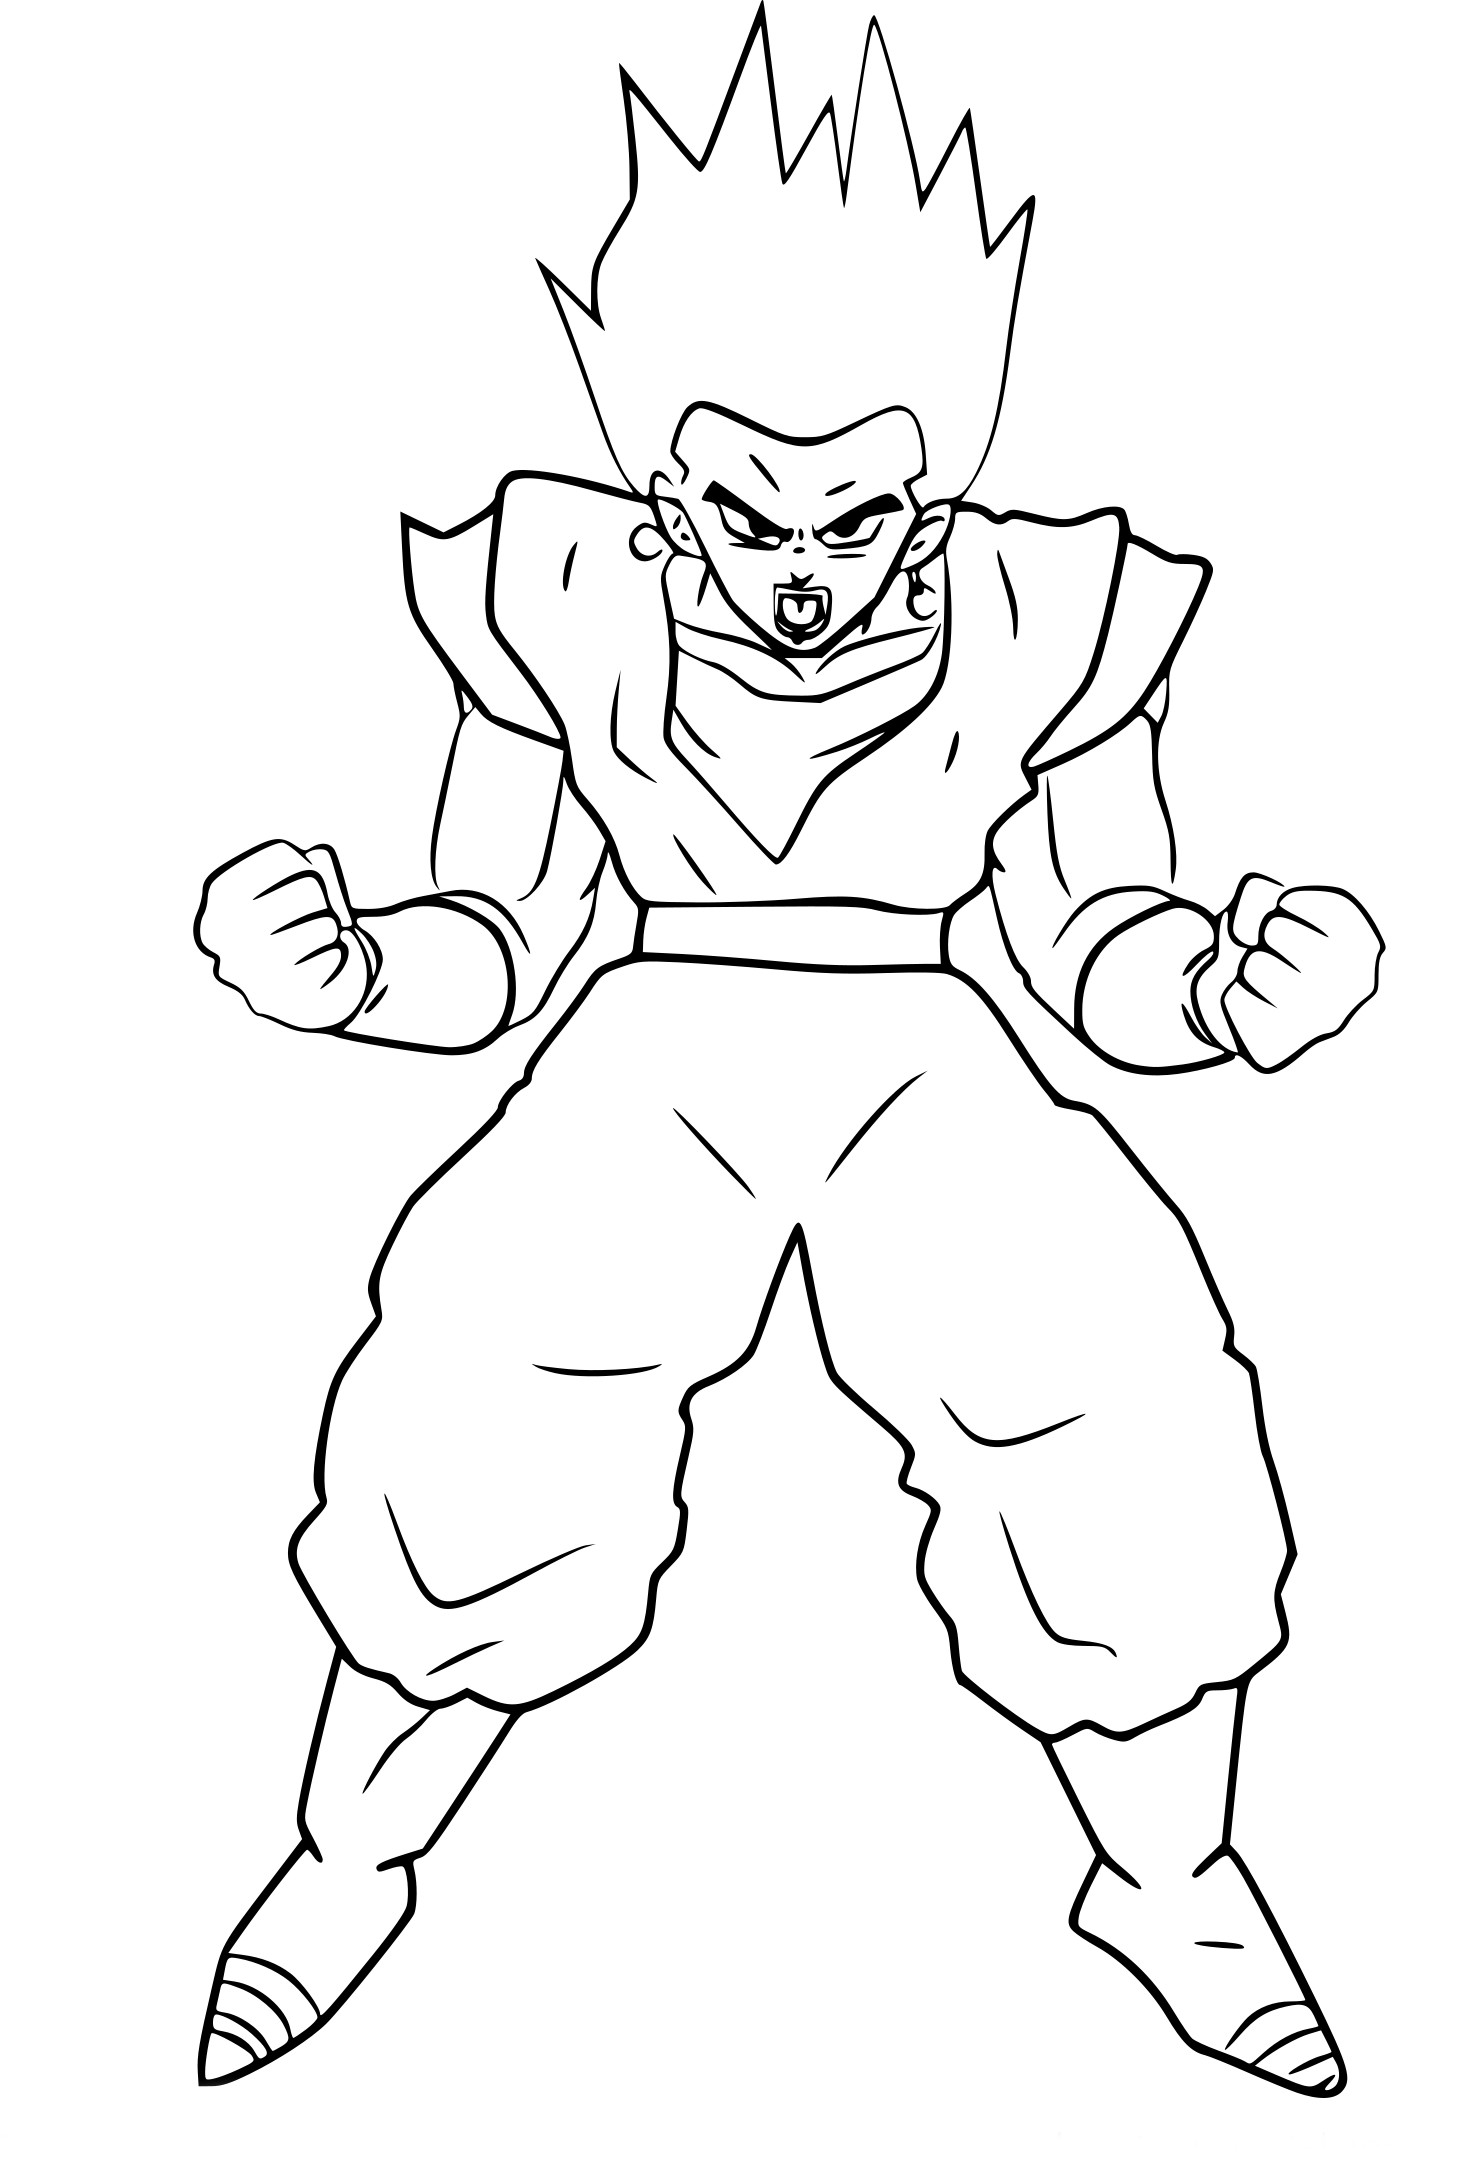 Coloriage vegeto dragon ball z imprimer - Dessin de dragon ball za imprimer ...